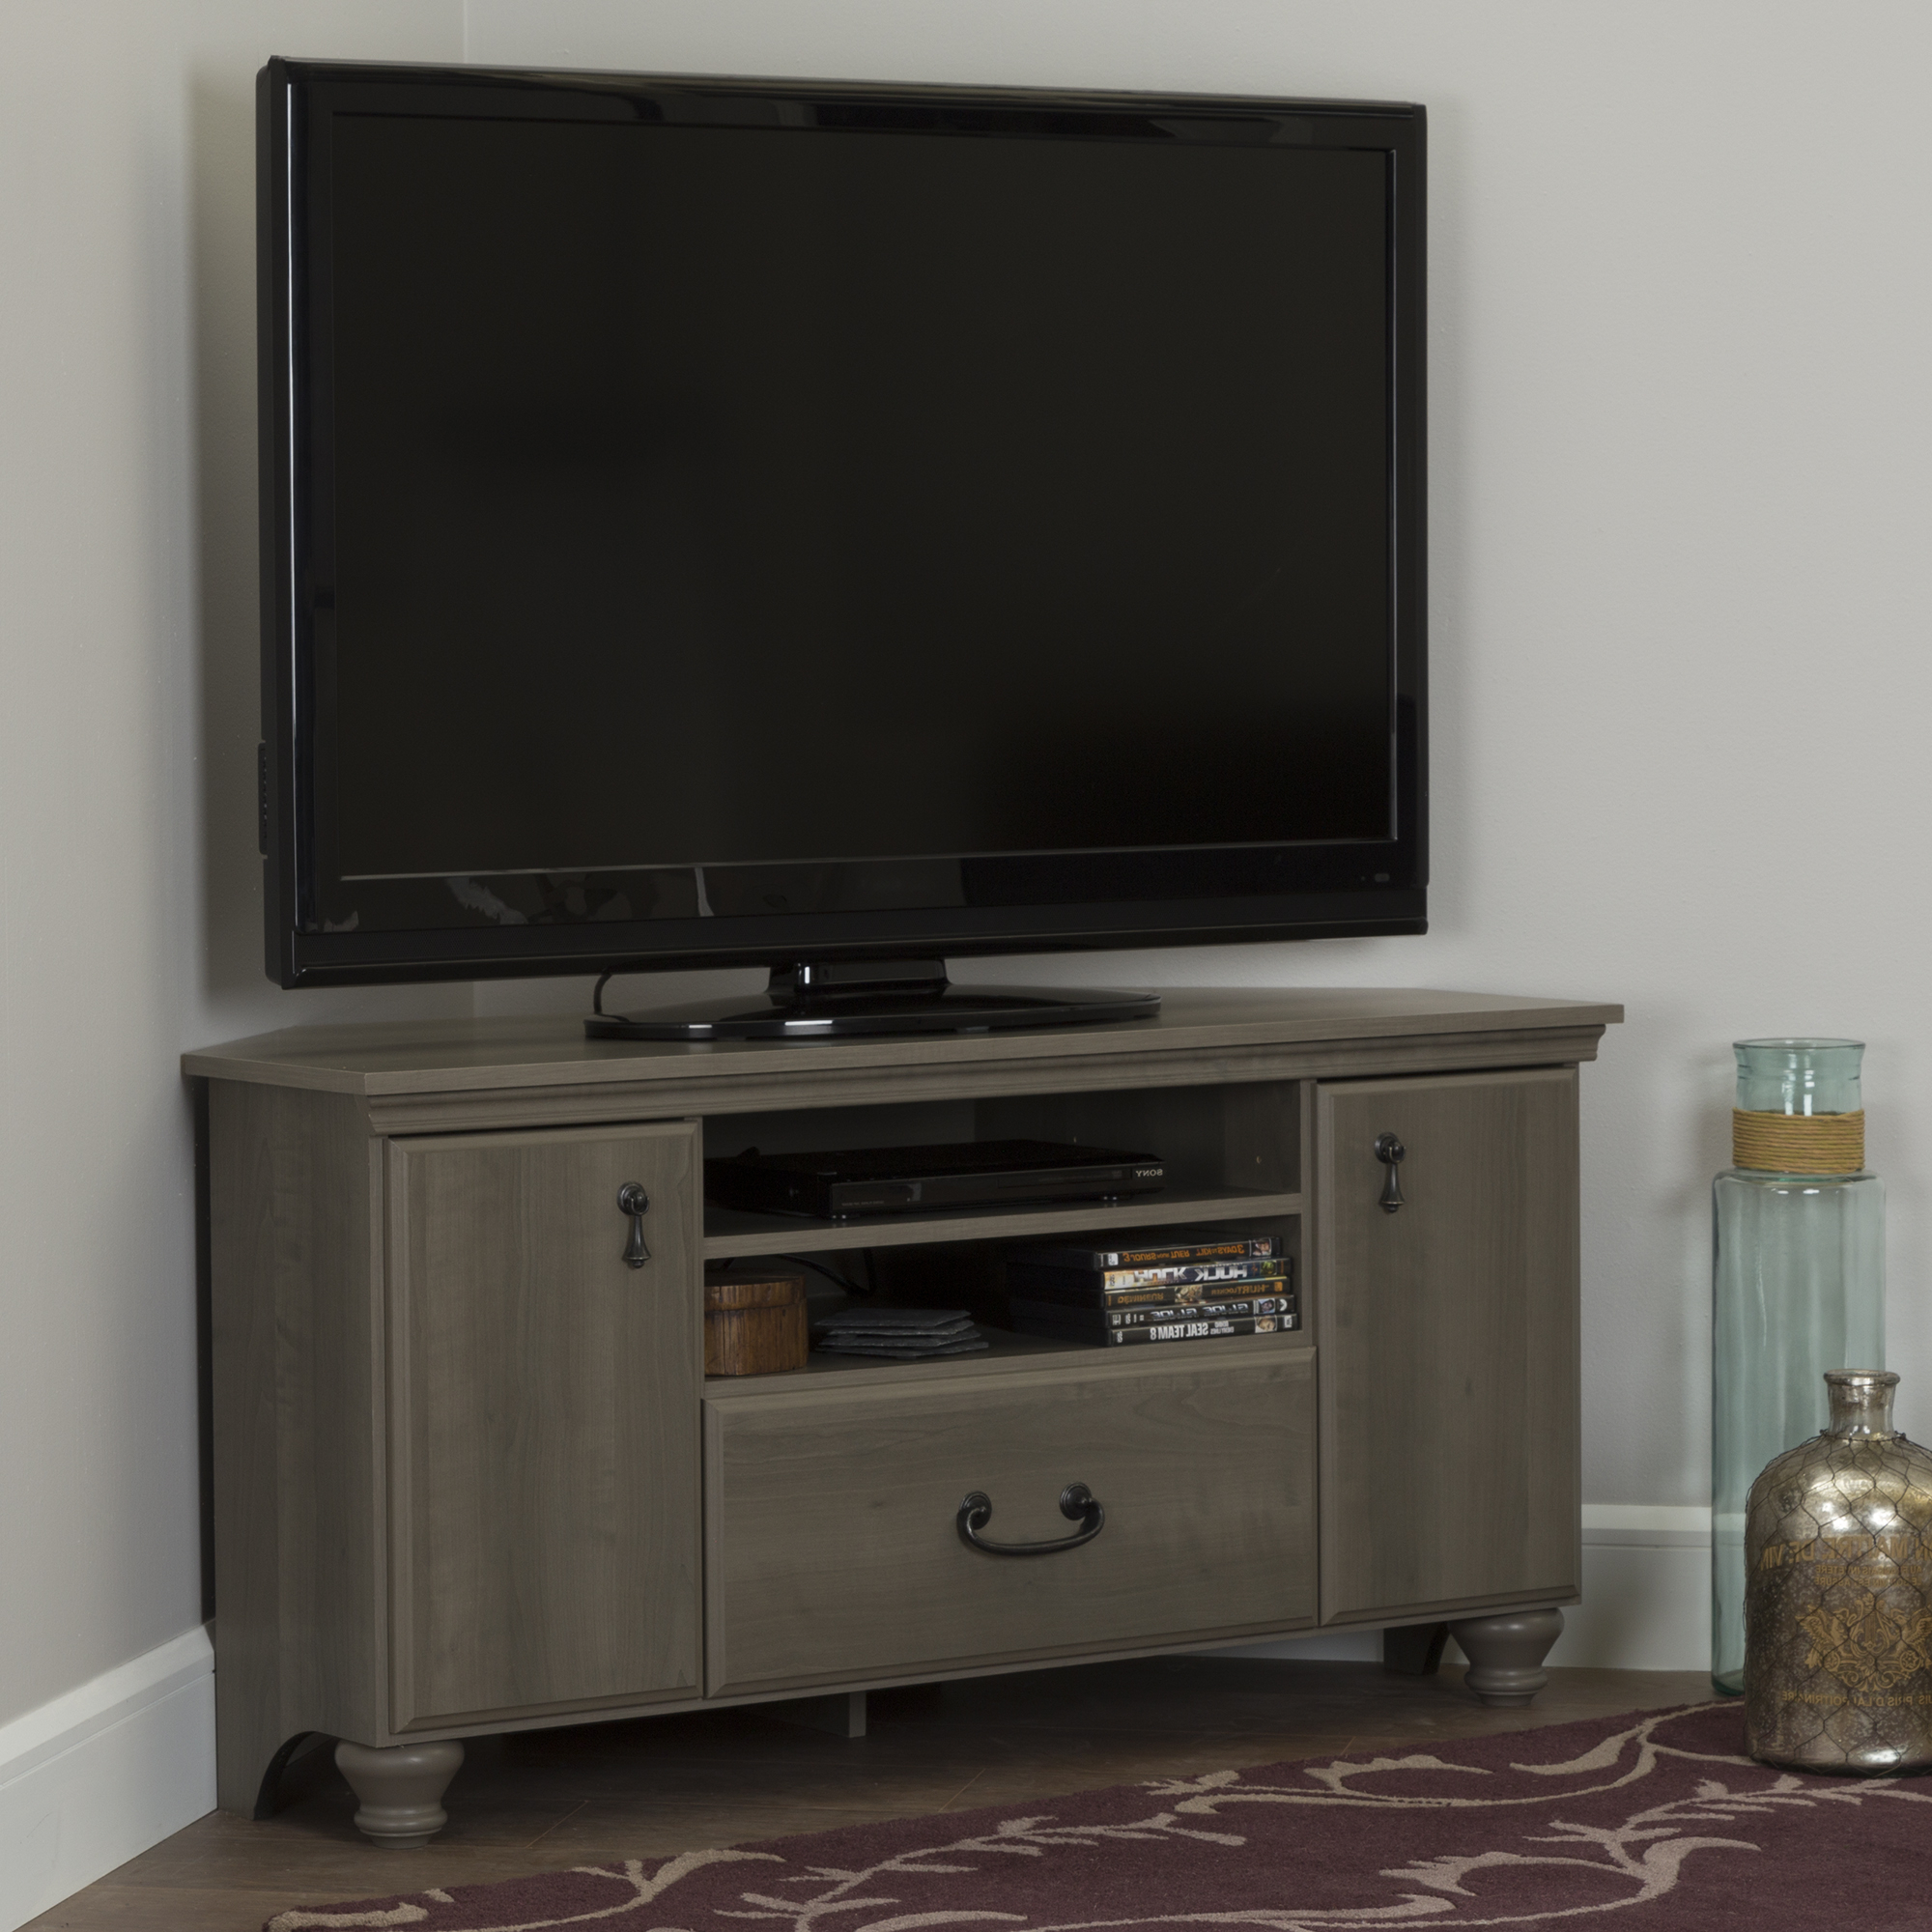 South Shore Noble Corner Tv Stand For Tvs Up To 55' In Intended For Tv Stands With Led Lights In Multiple Finishes (View 8 of 20)